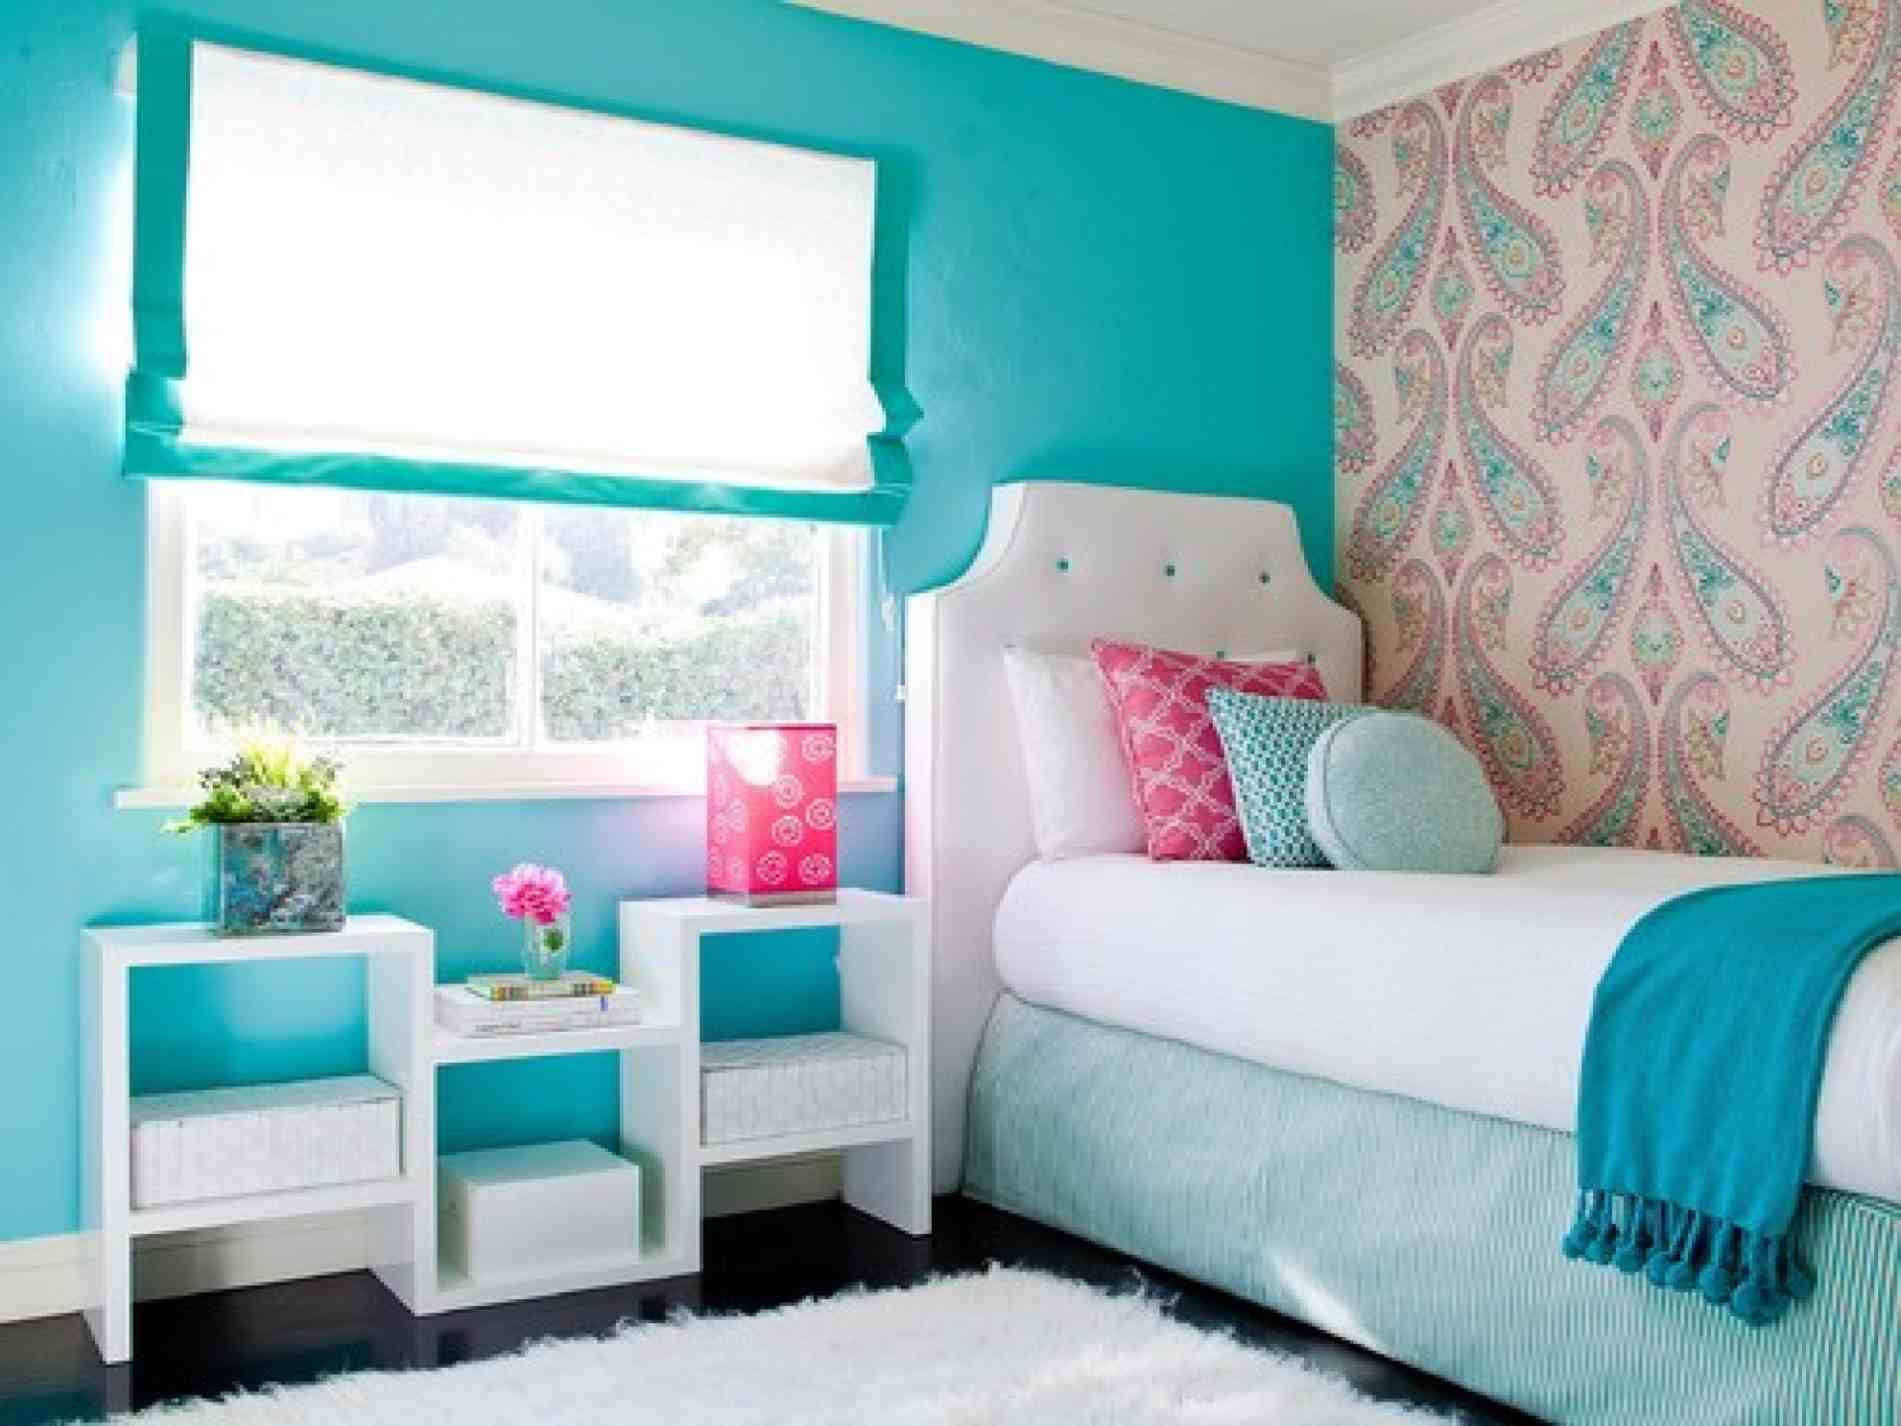 Small Bedroom Decorating Ideas For Teenage Girl | Home Design Images ...